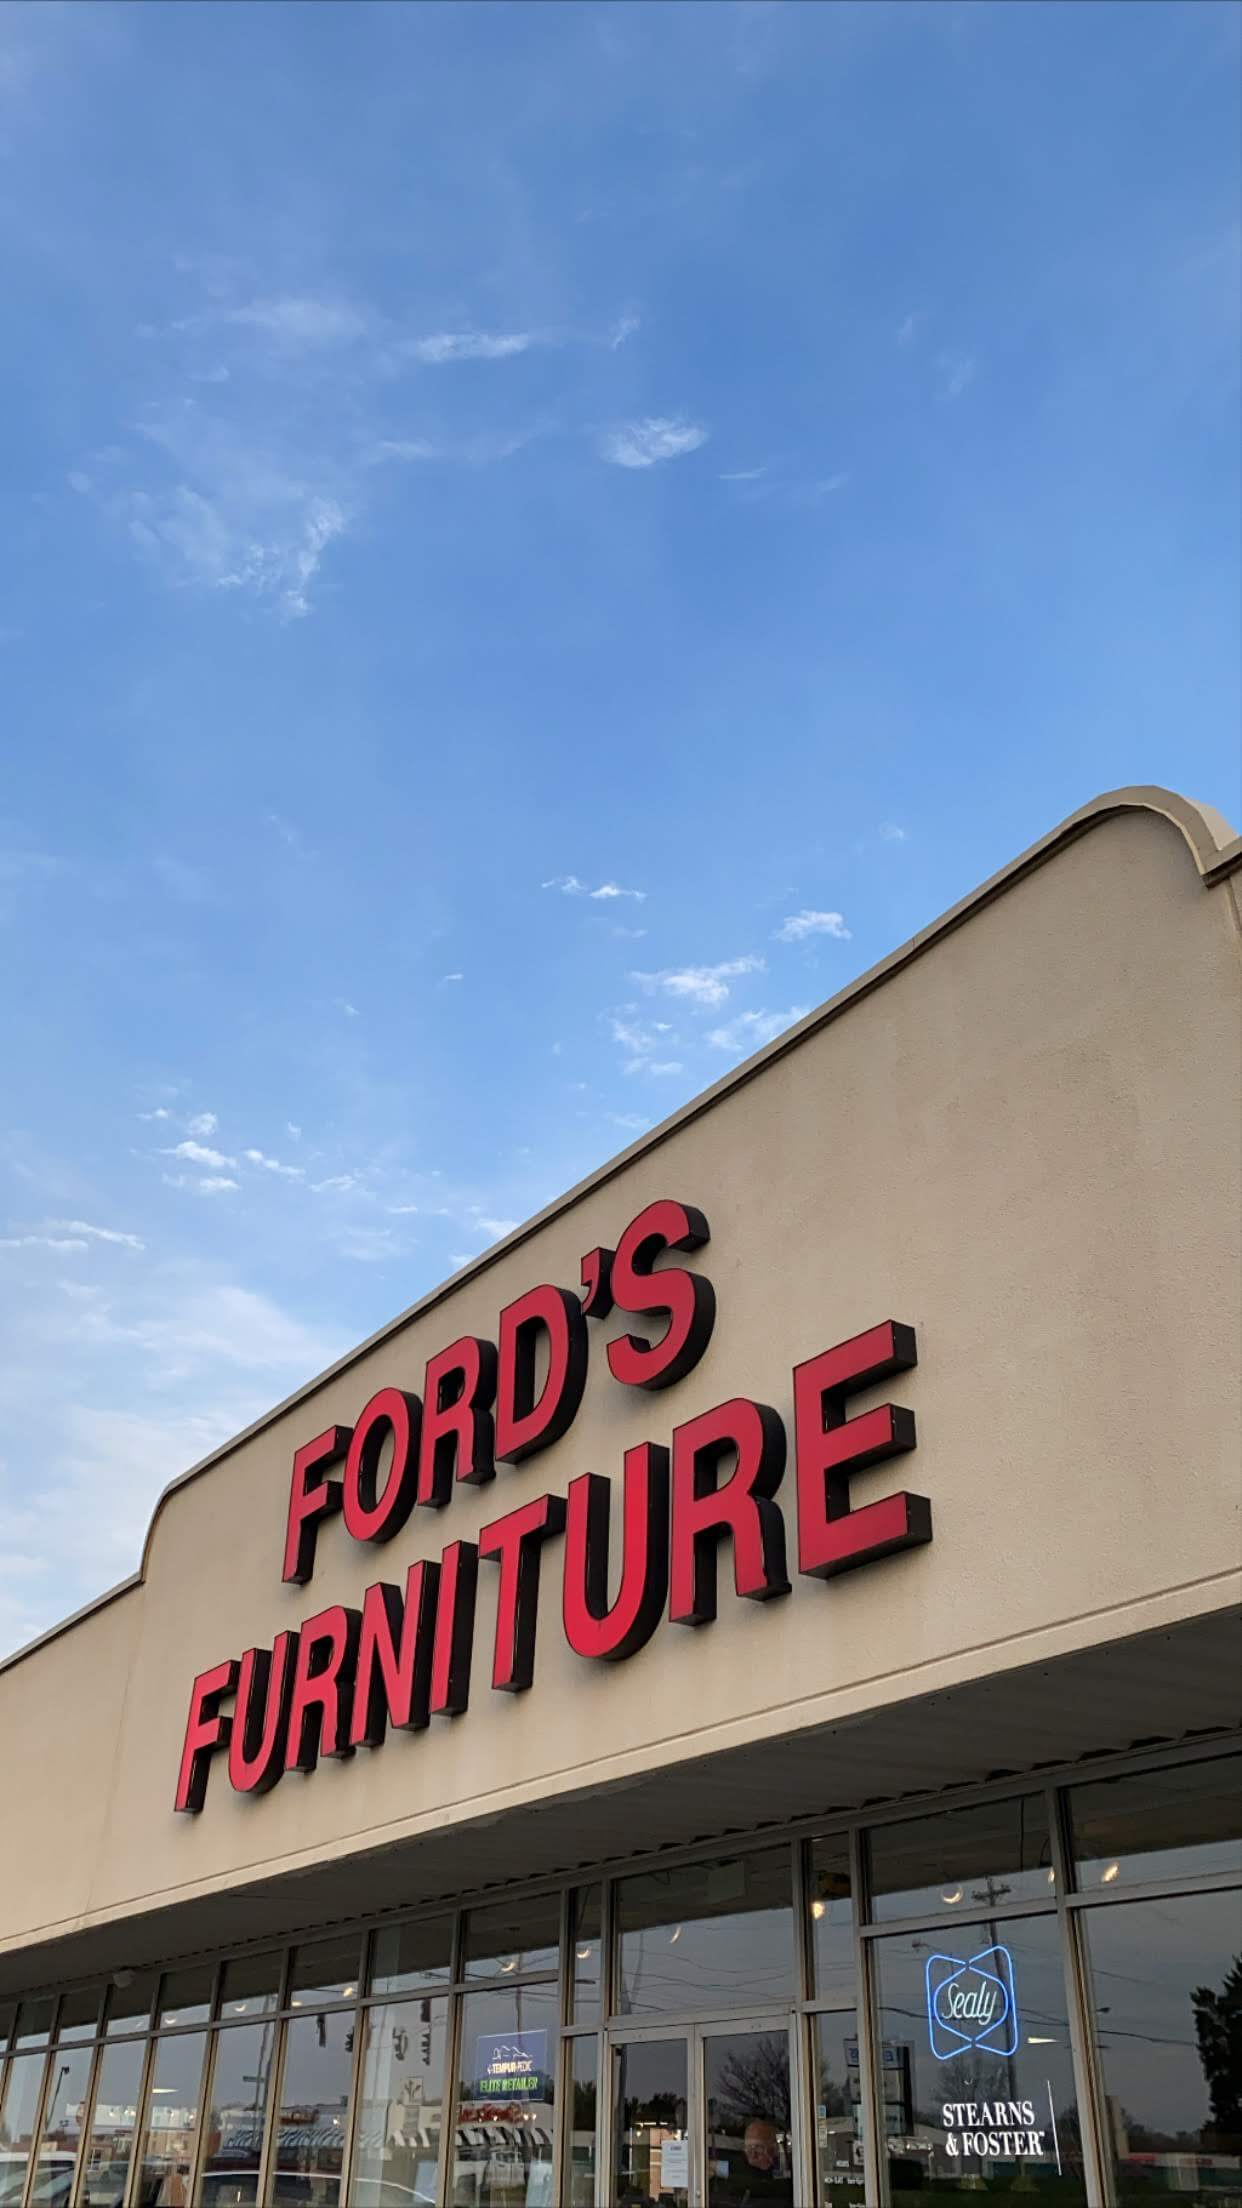 2020 photo of Ford's Furniture